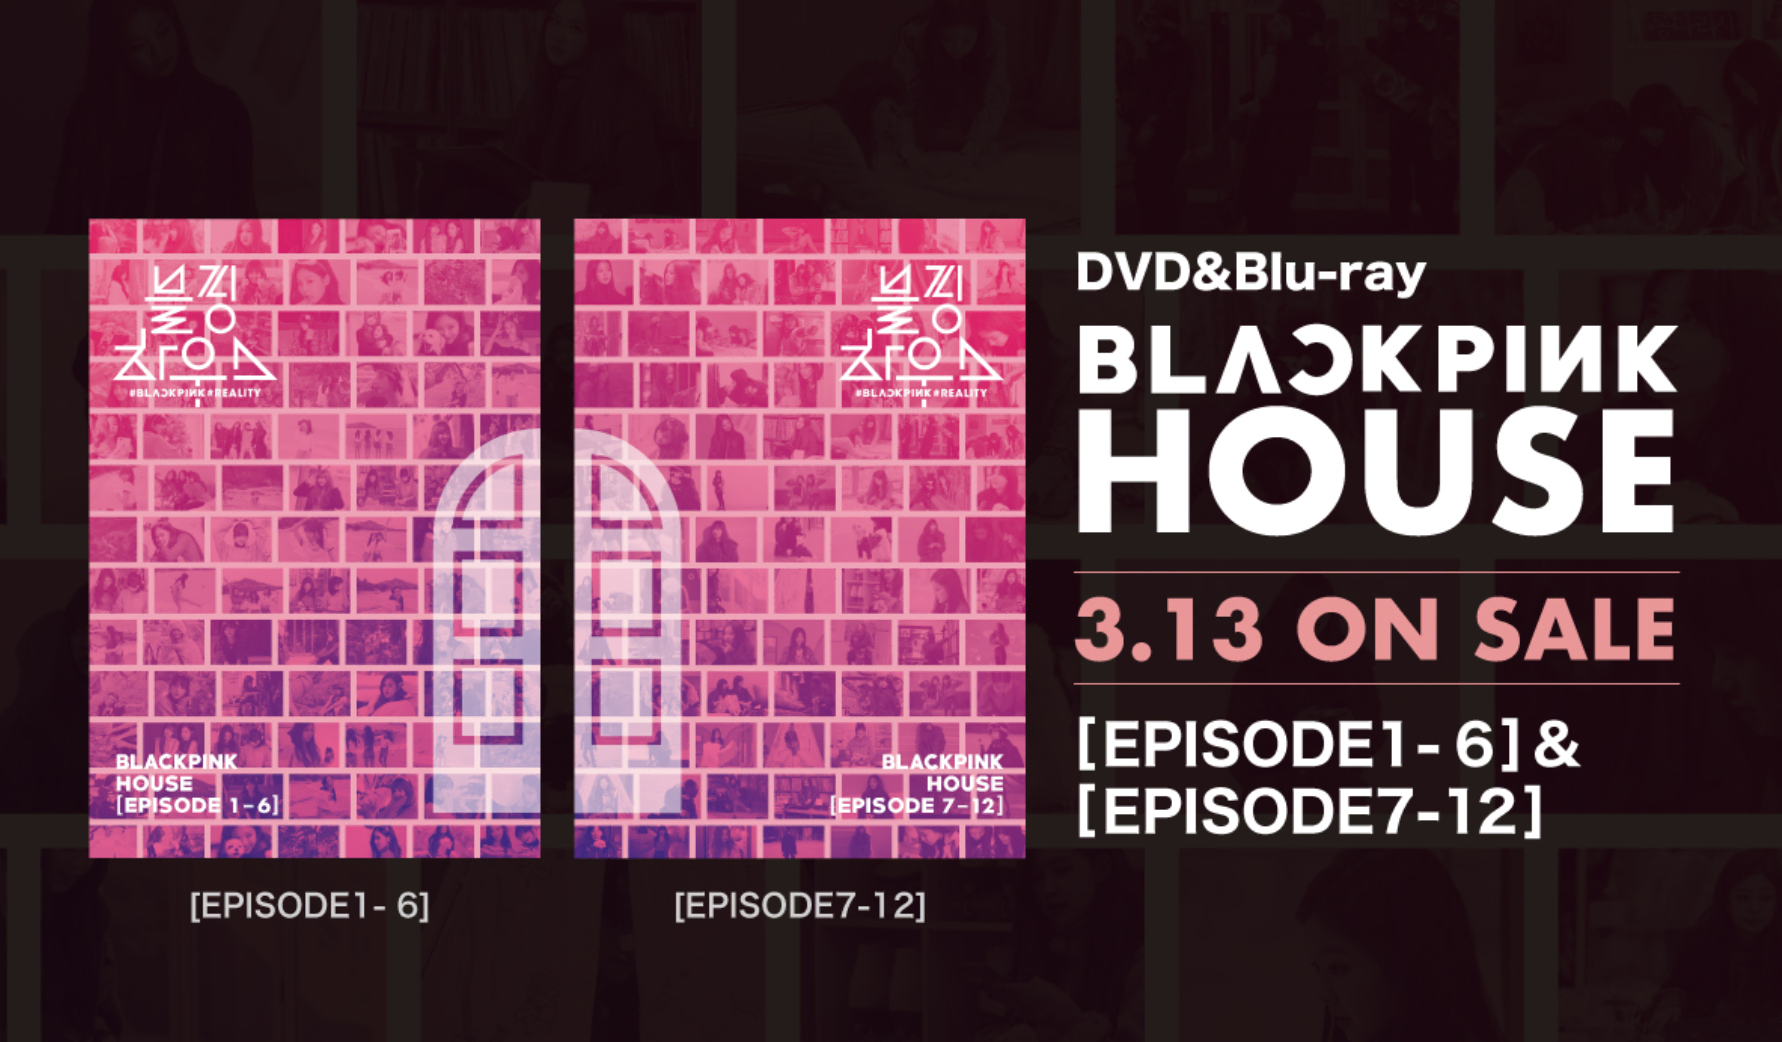 DVD&Blu-ray 『BLACKPINK HOUSE』